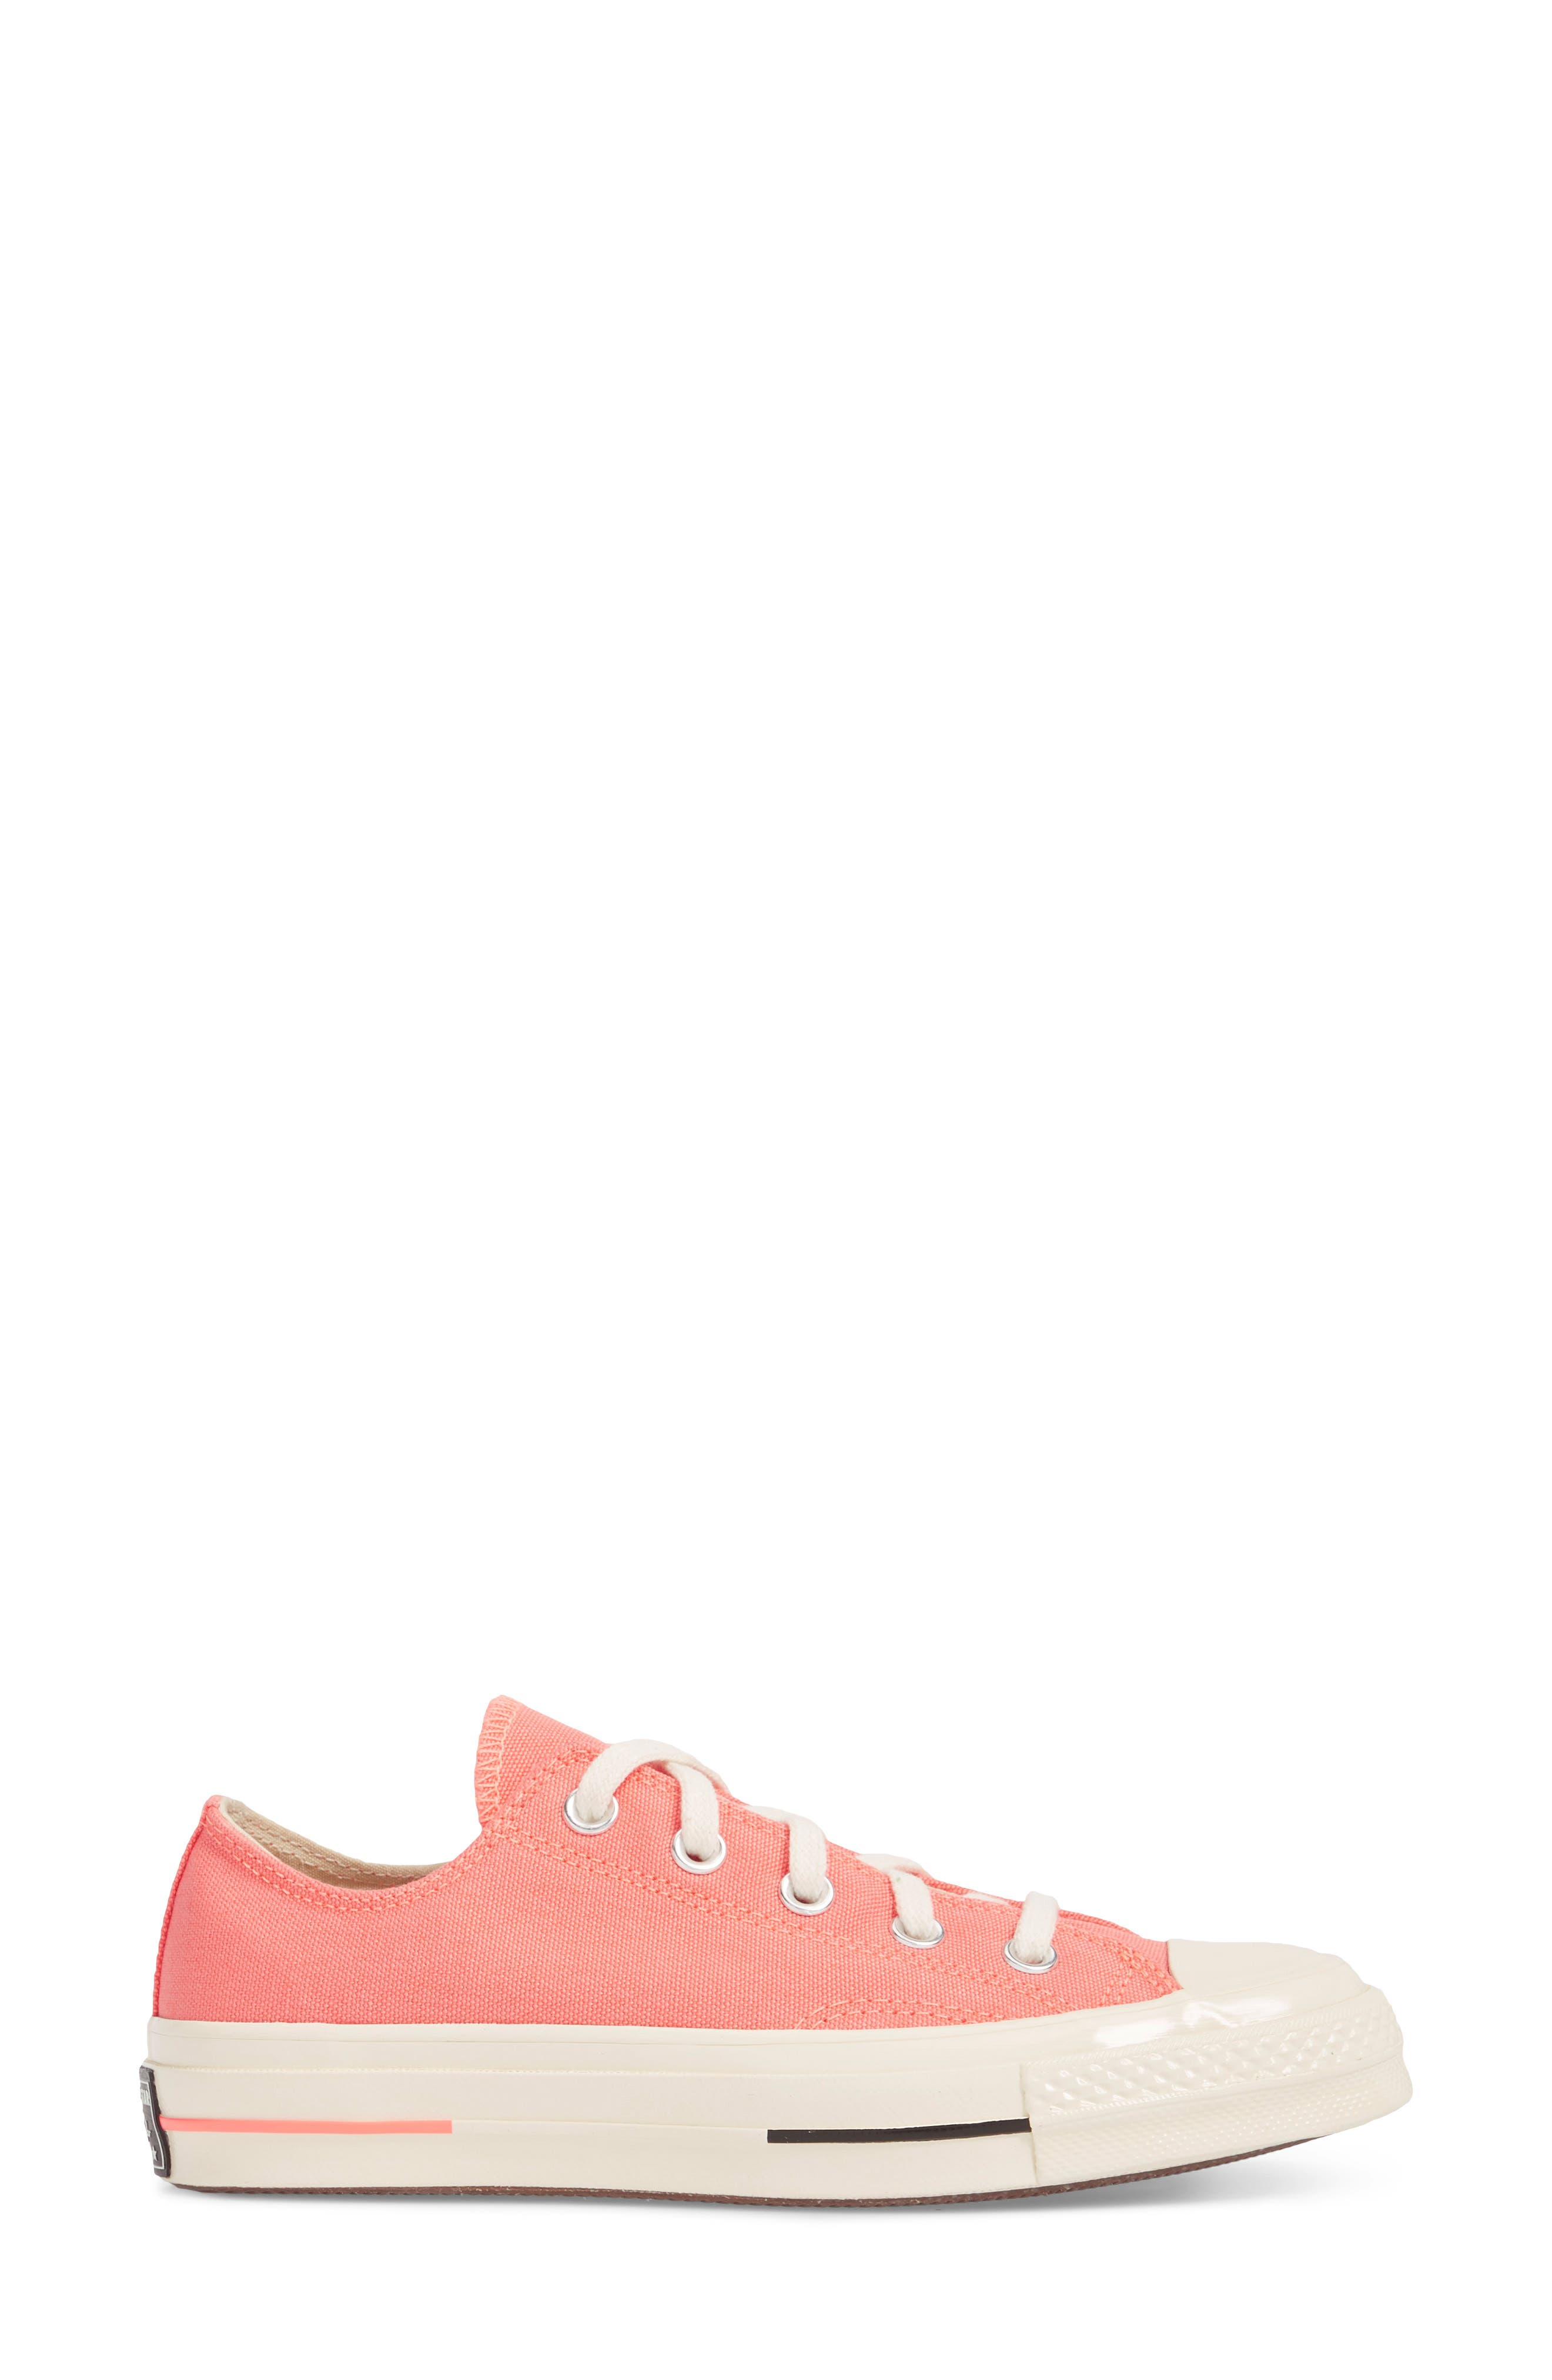 Chuck Taylor<sup>®</sup> All Star<sup>®</sup> '70s Brights Low Top Sneaker,                             Alternate thumbnail 3, color,                             CRIMSON PULSE